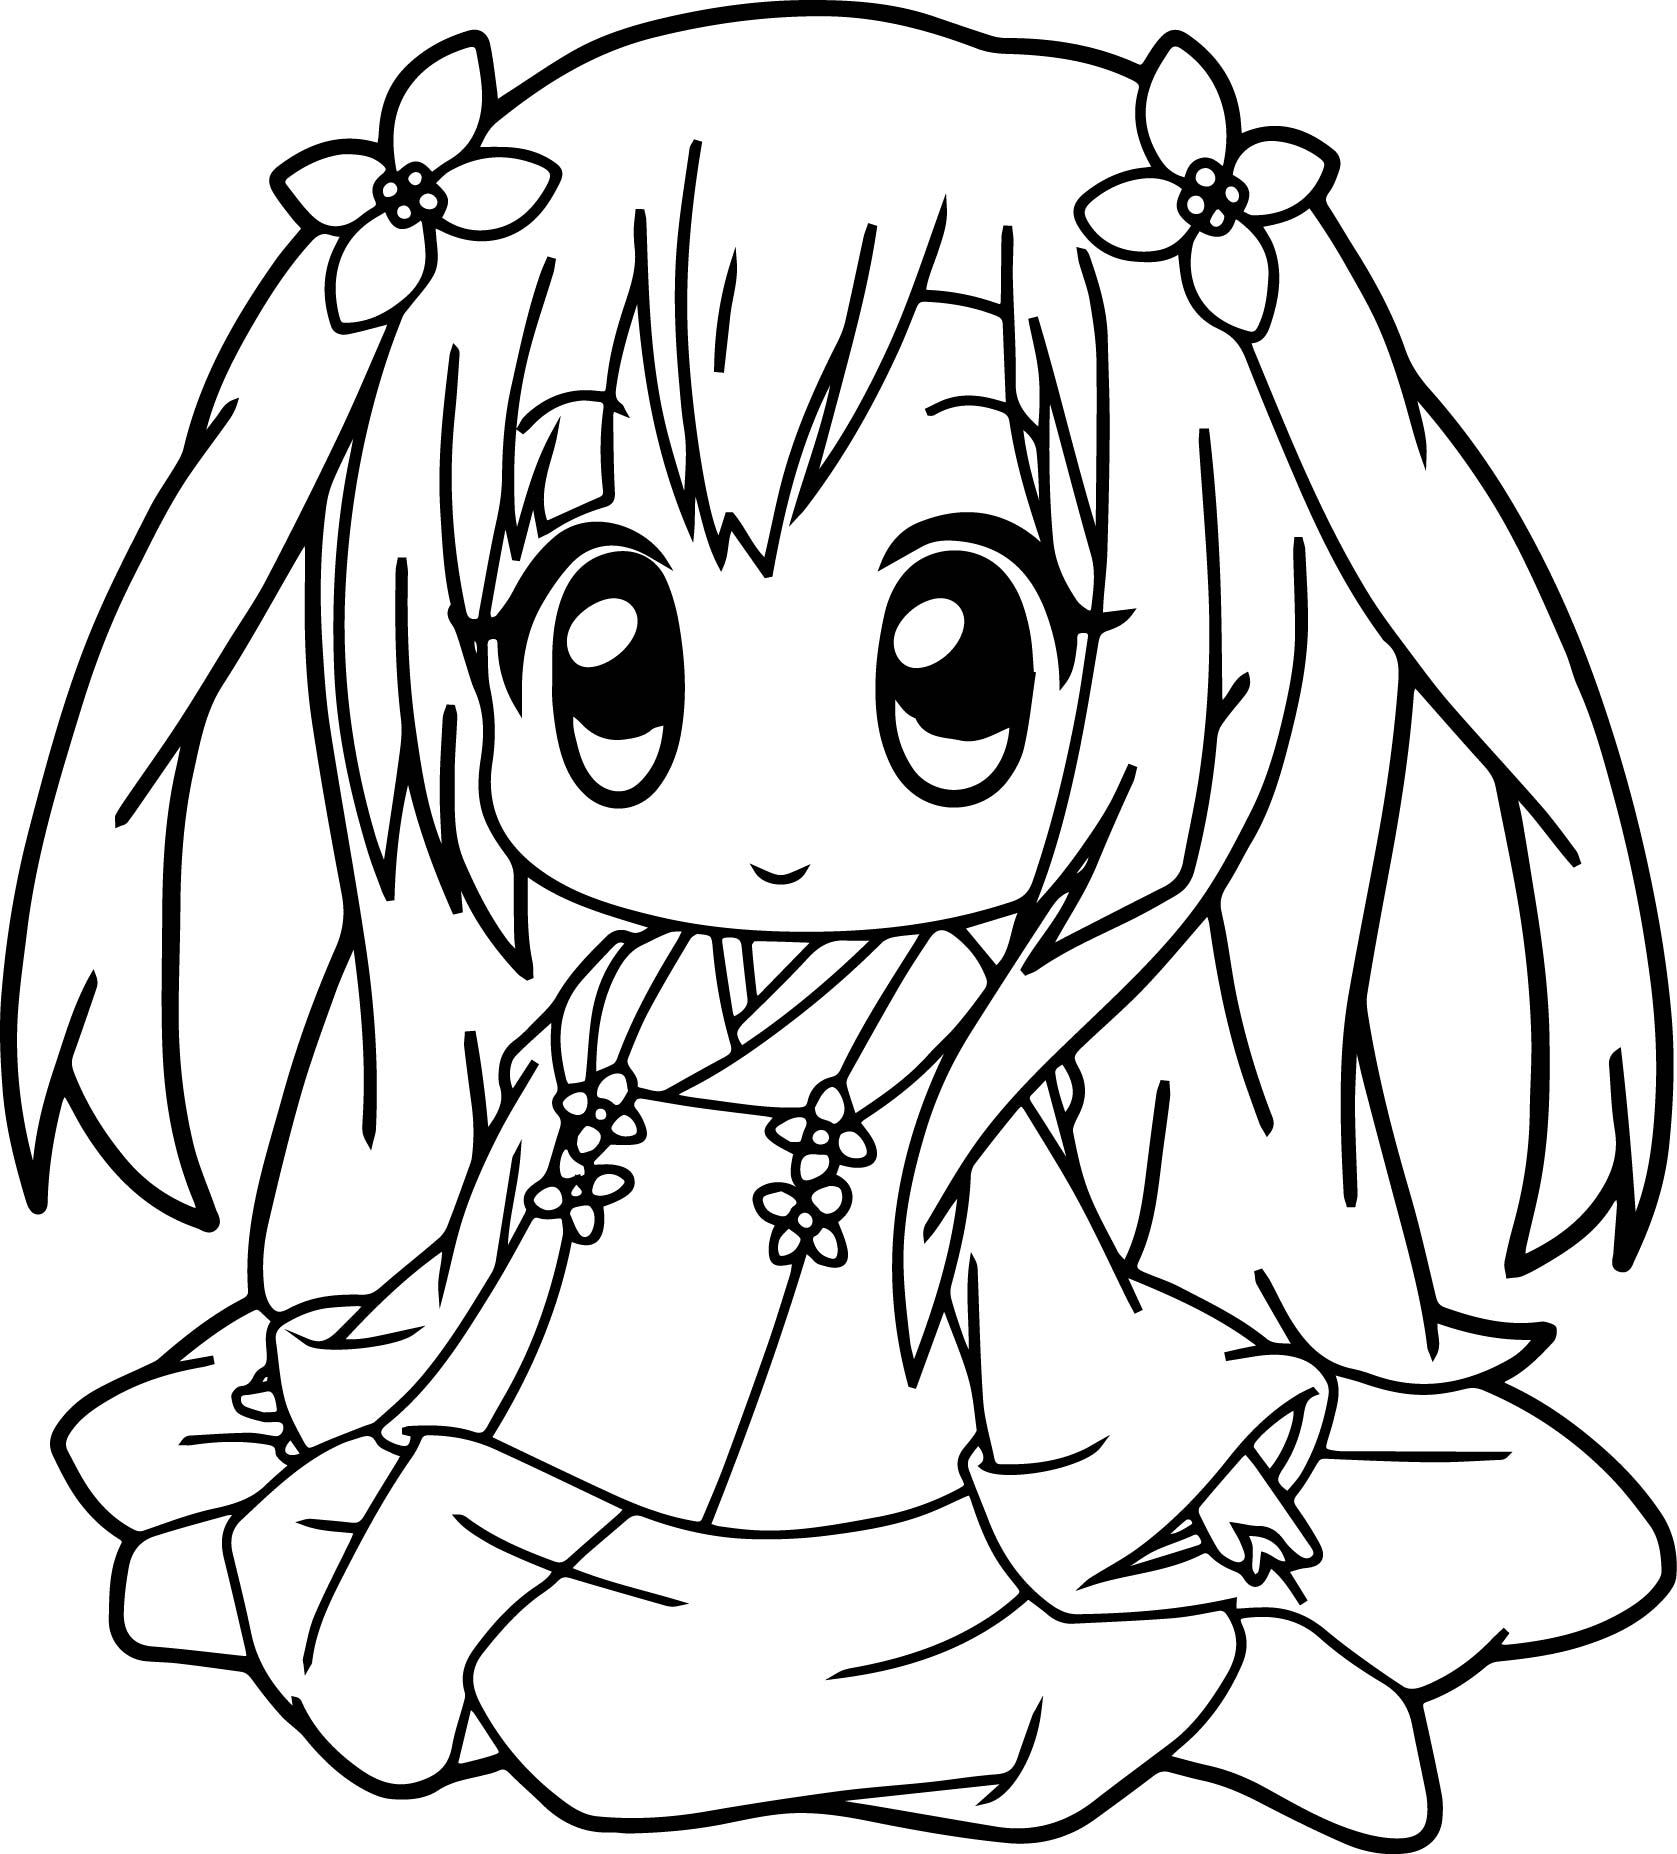 1677x1854 Very Cute Anime Girl Coloring Page Wecoloringpage